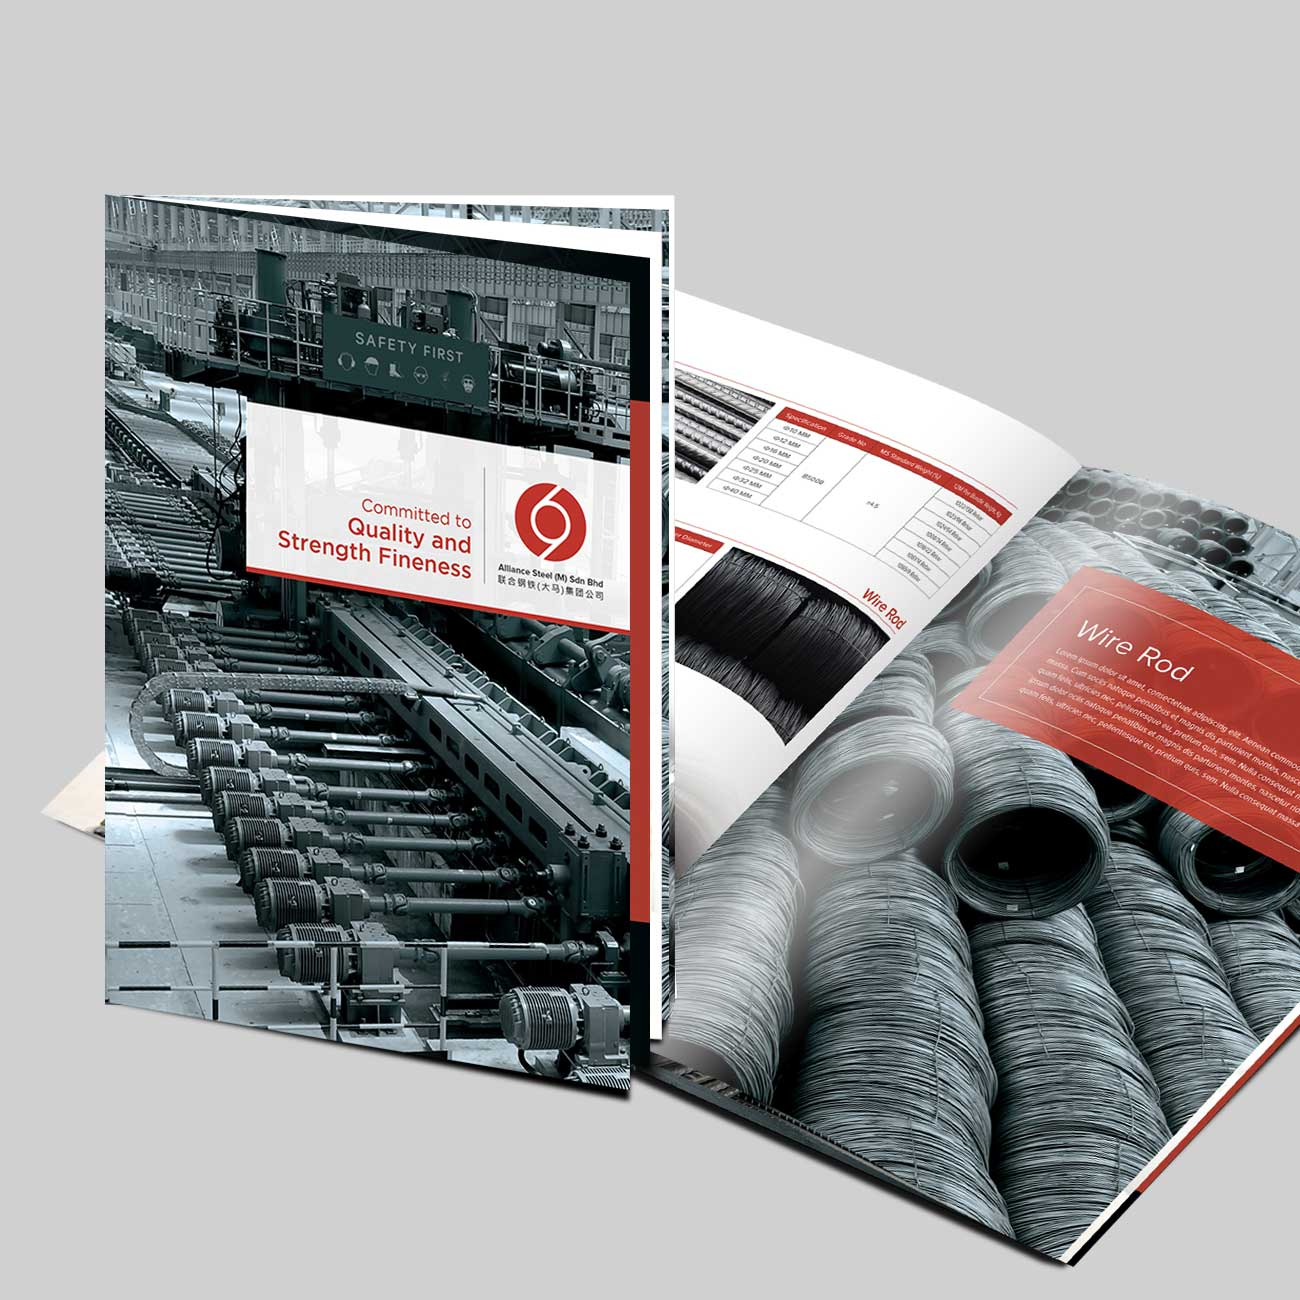 Alliance Steel (M) Company Profile in Booklet type